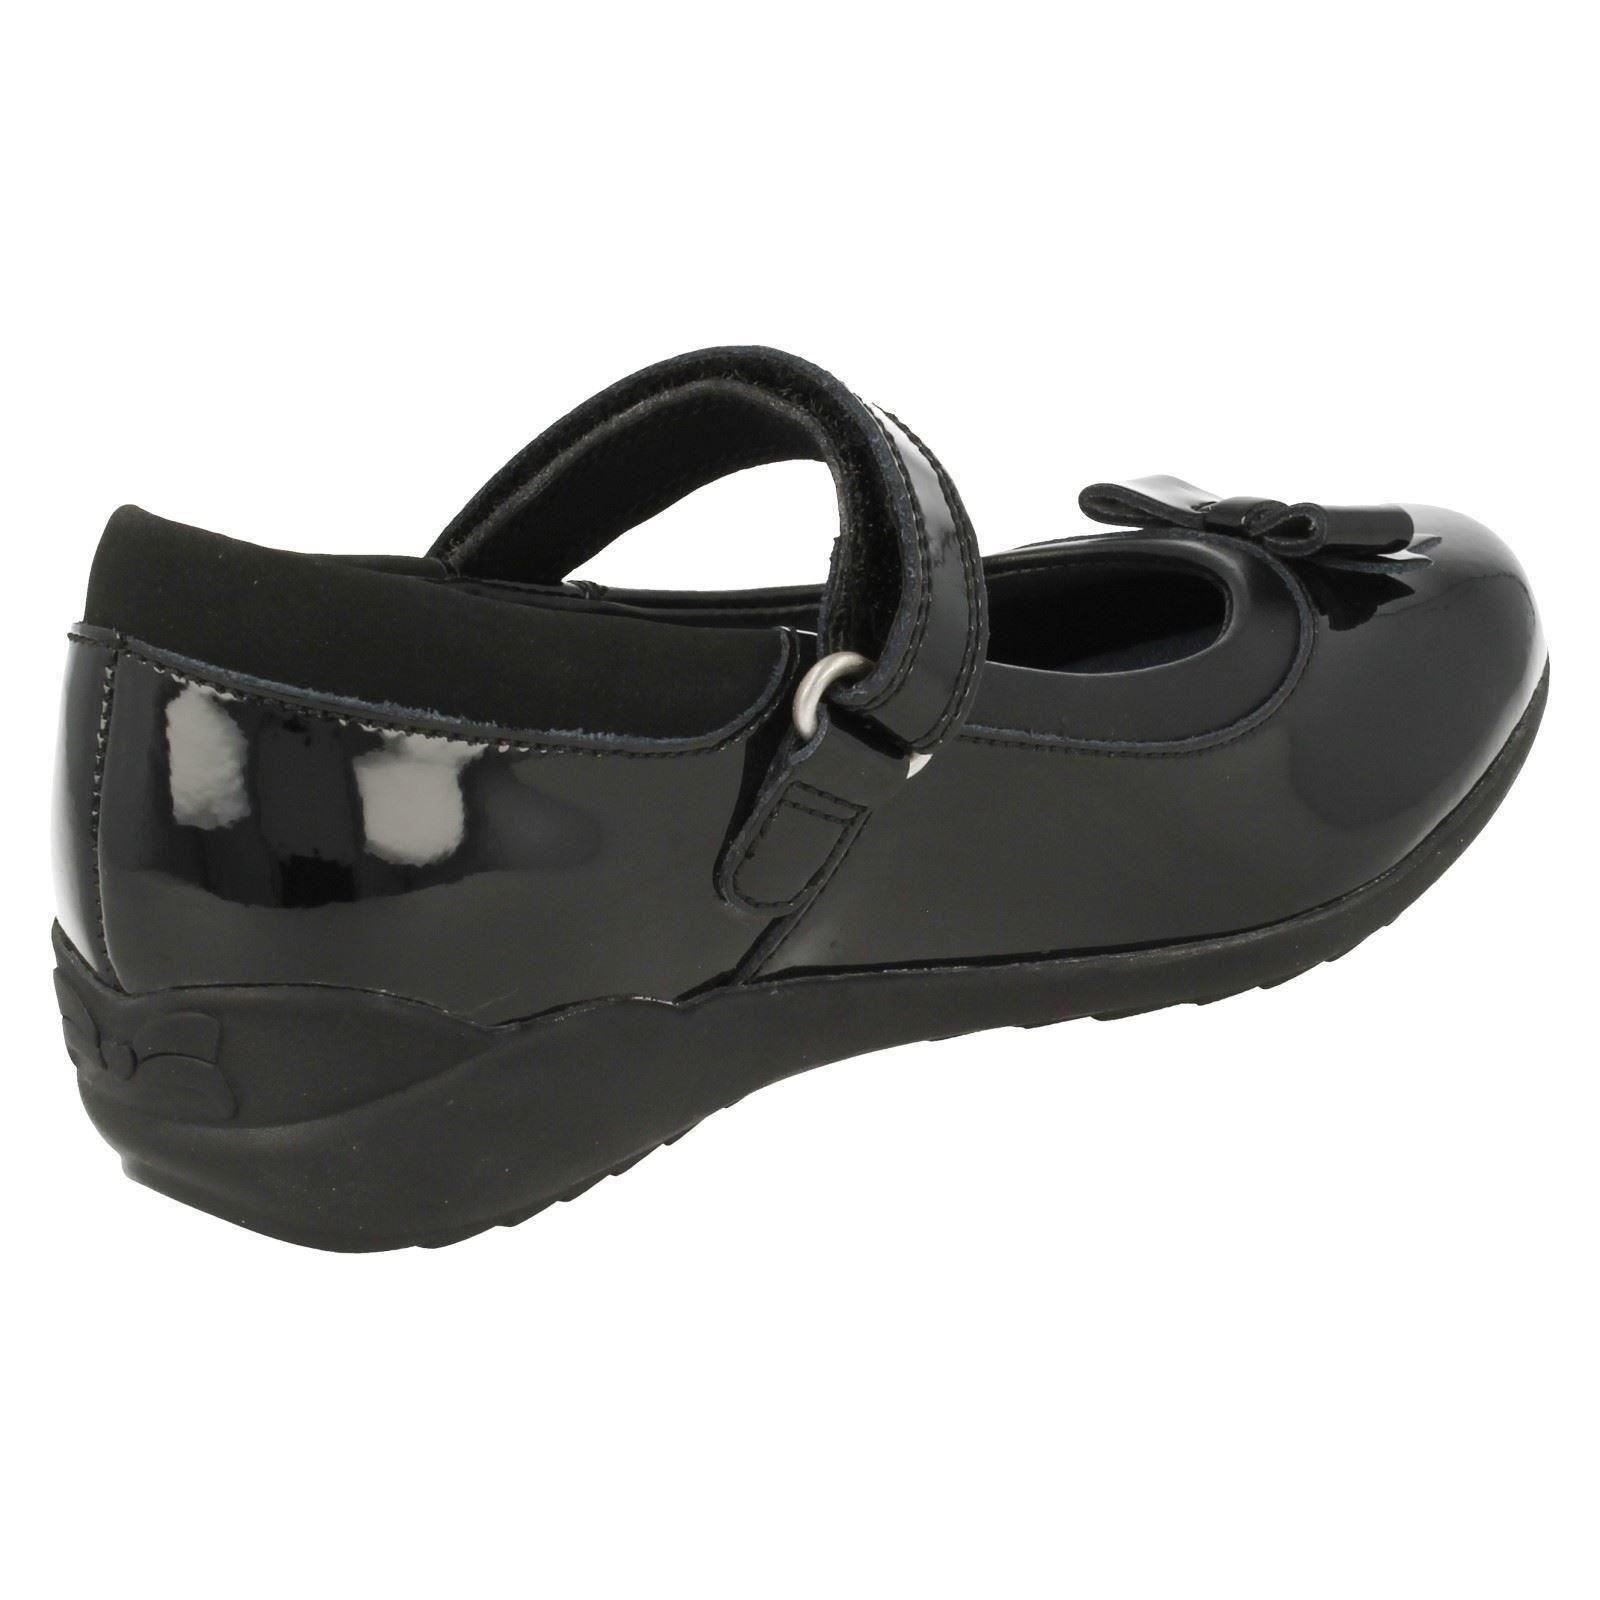 3375318e1 Girls-Clarks-School-Shoes-Ting-Fever thumbnail 15